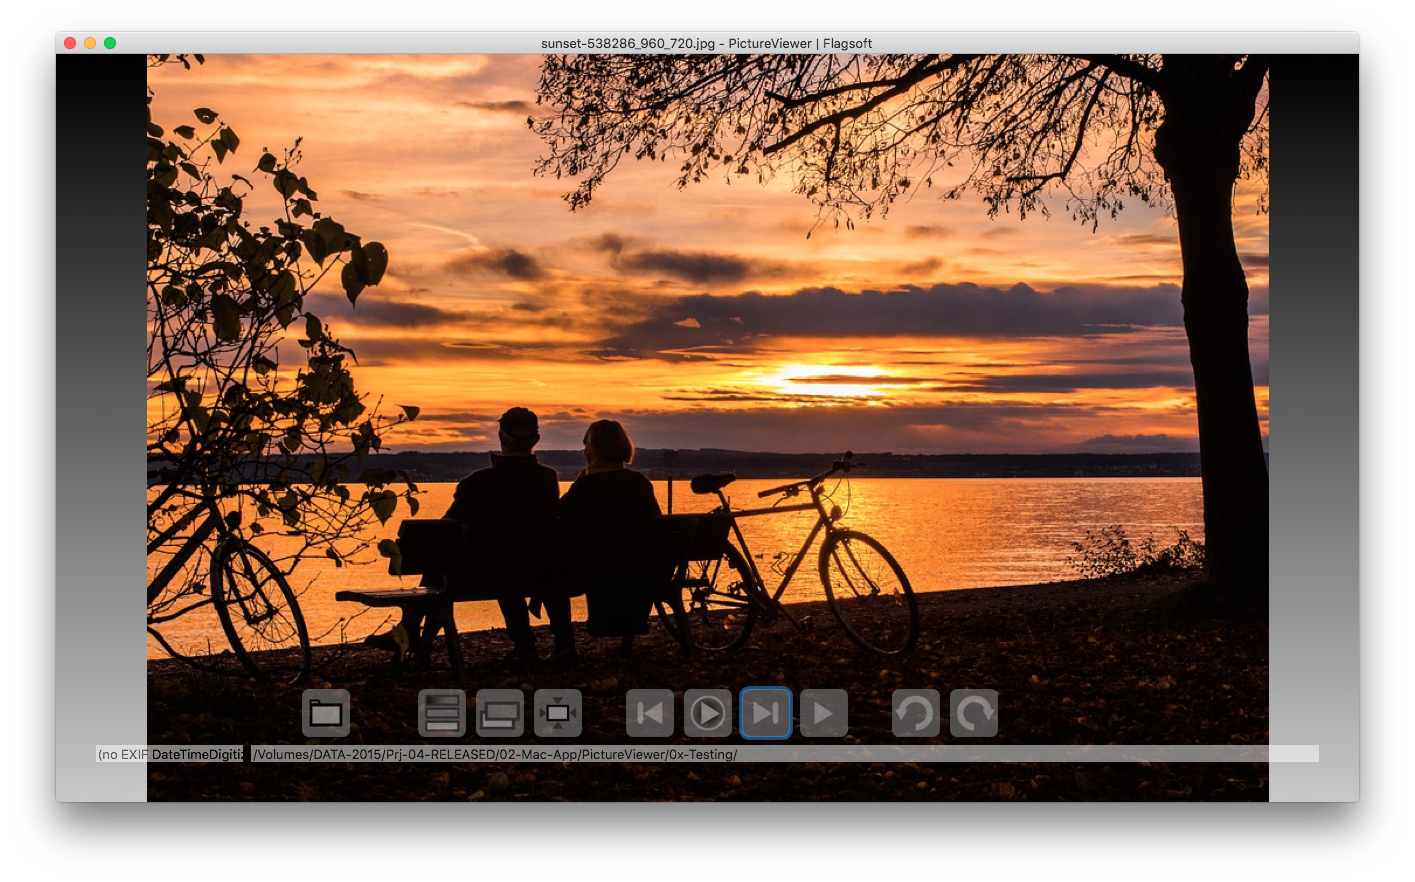 PictureViewer-12.04.21